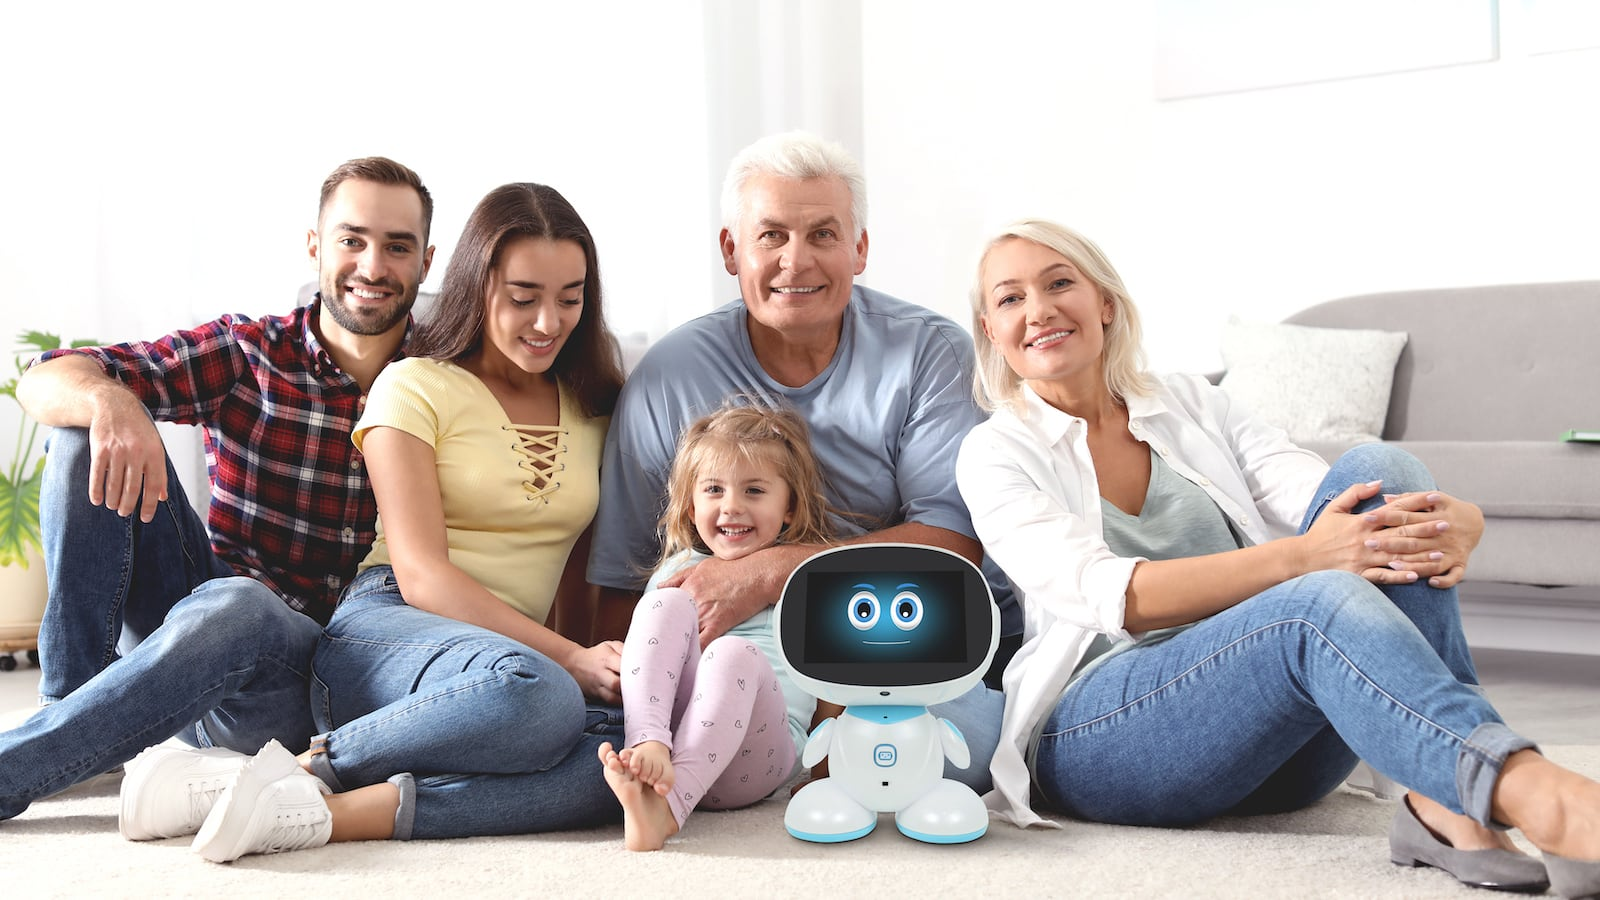 Misa Next Generation Social Family Robot is your family's new companion